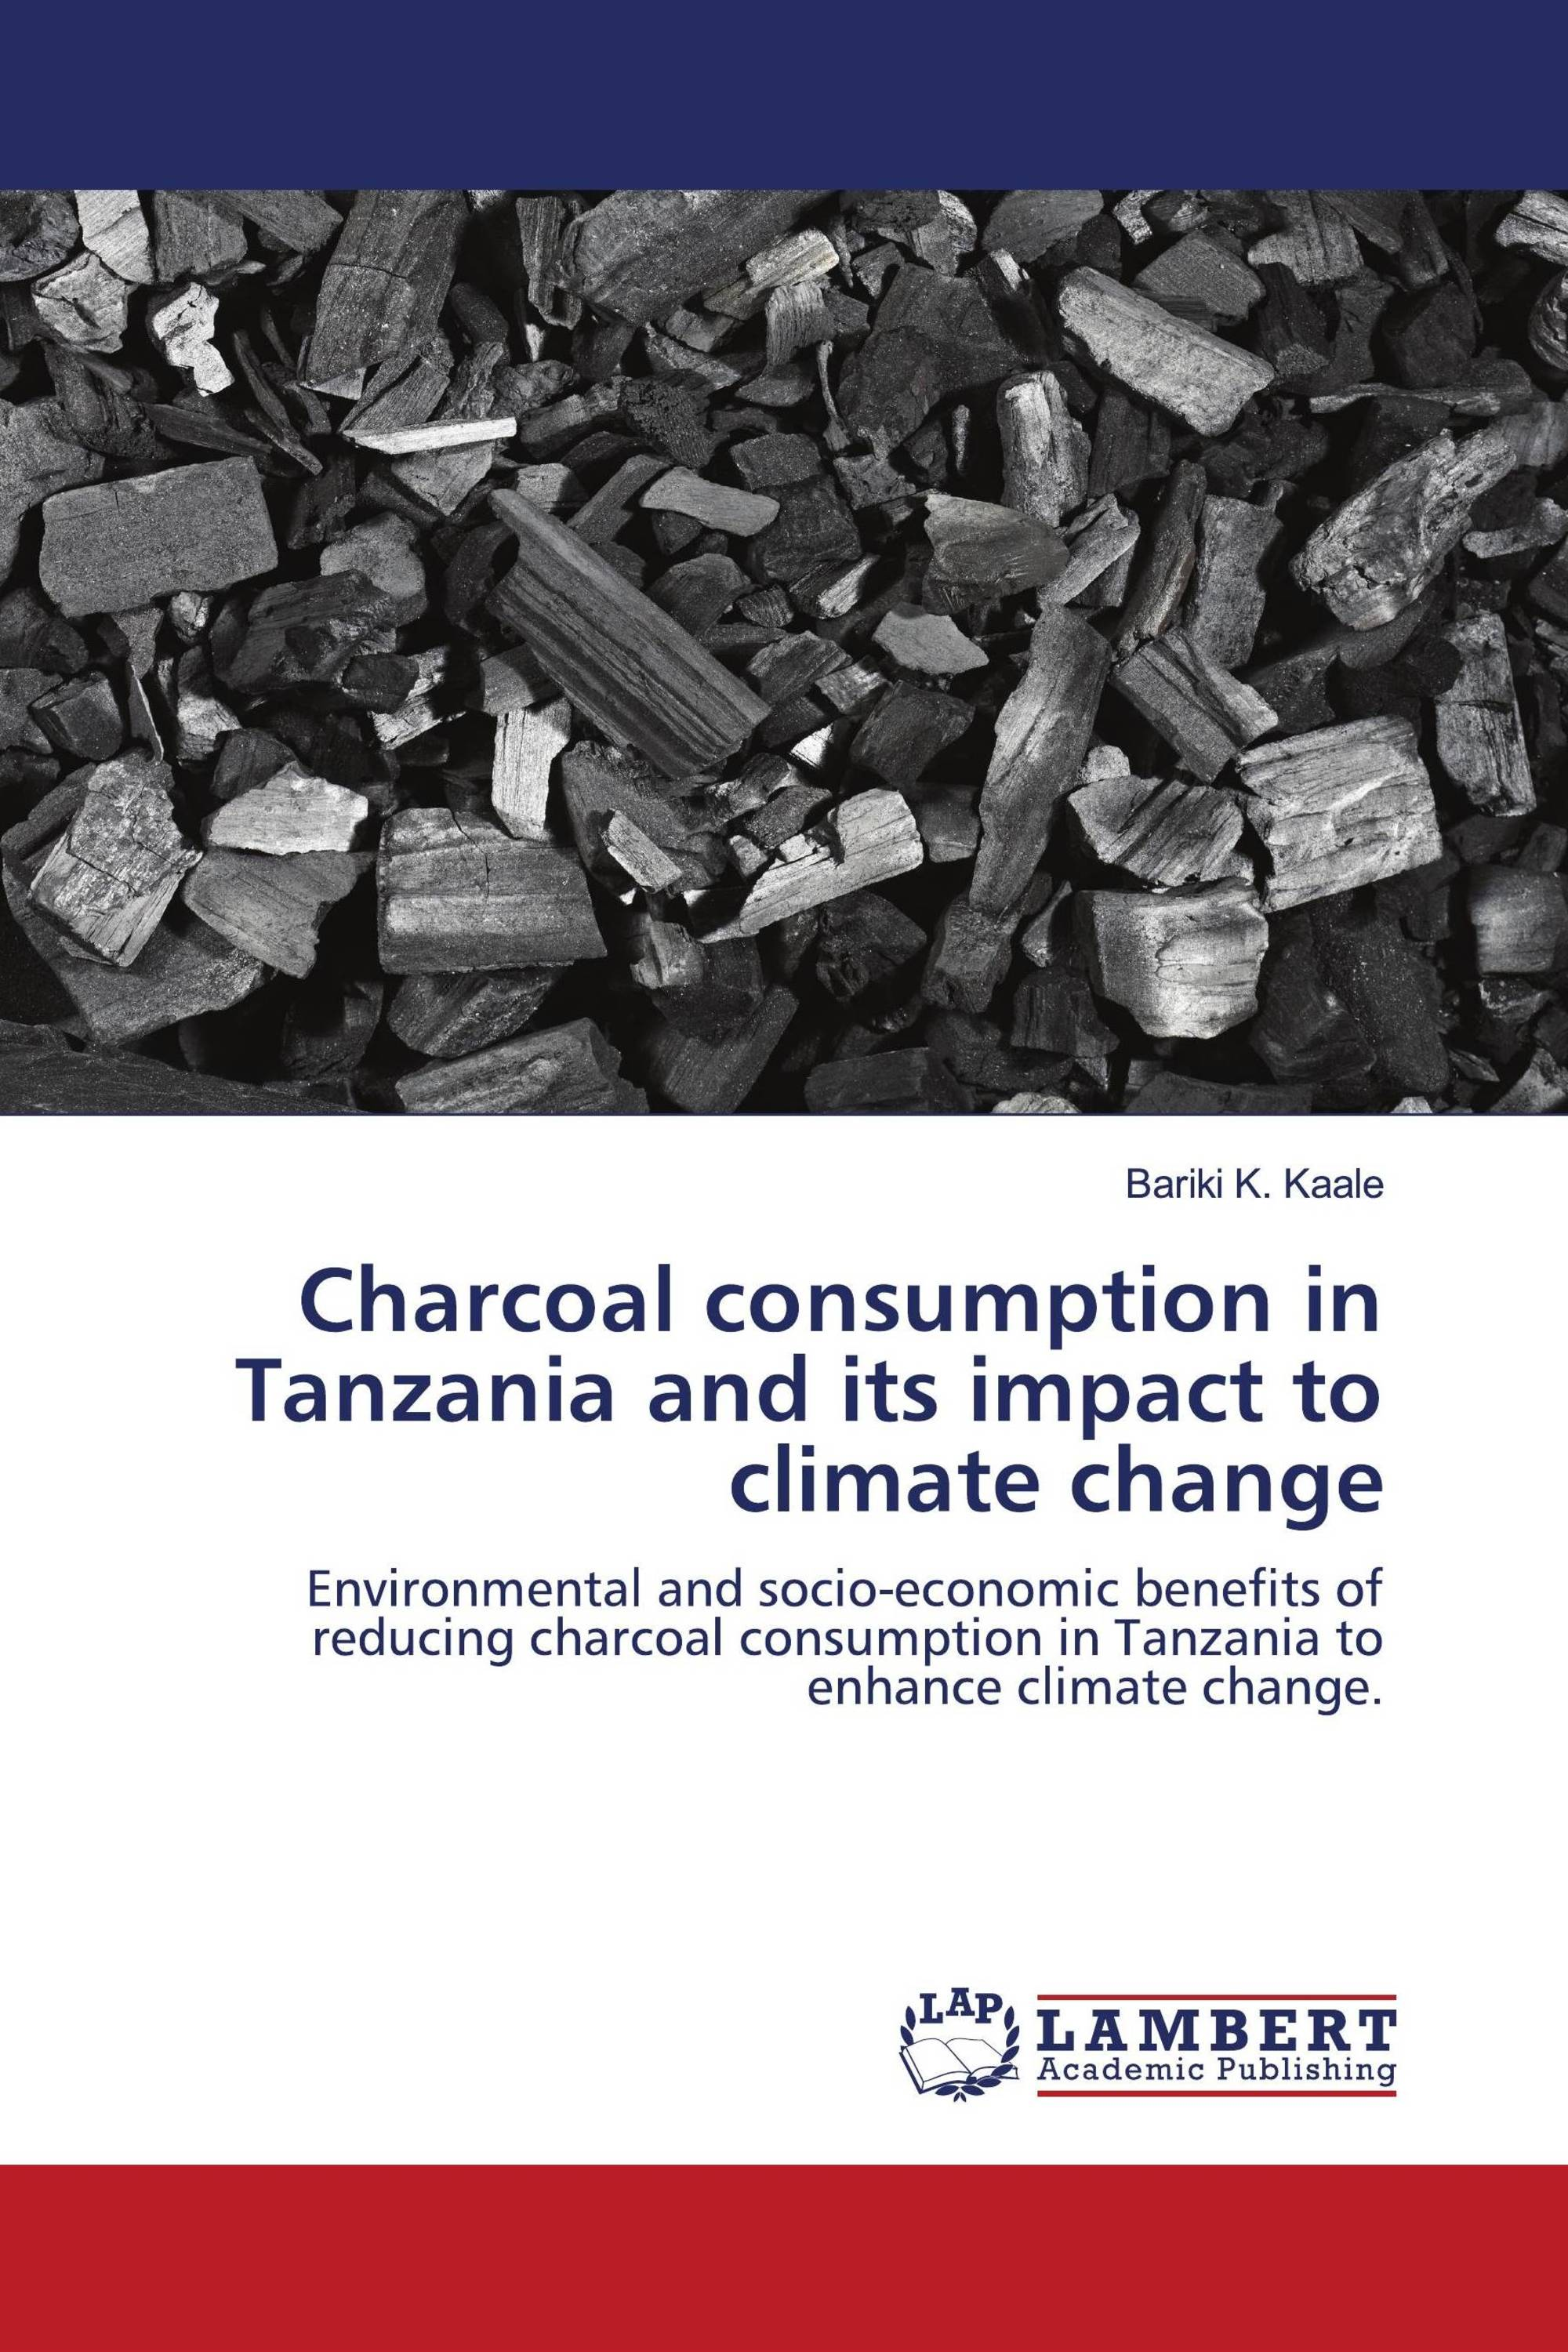 Charcoal consumption in Tanzania and its impact to climate change